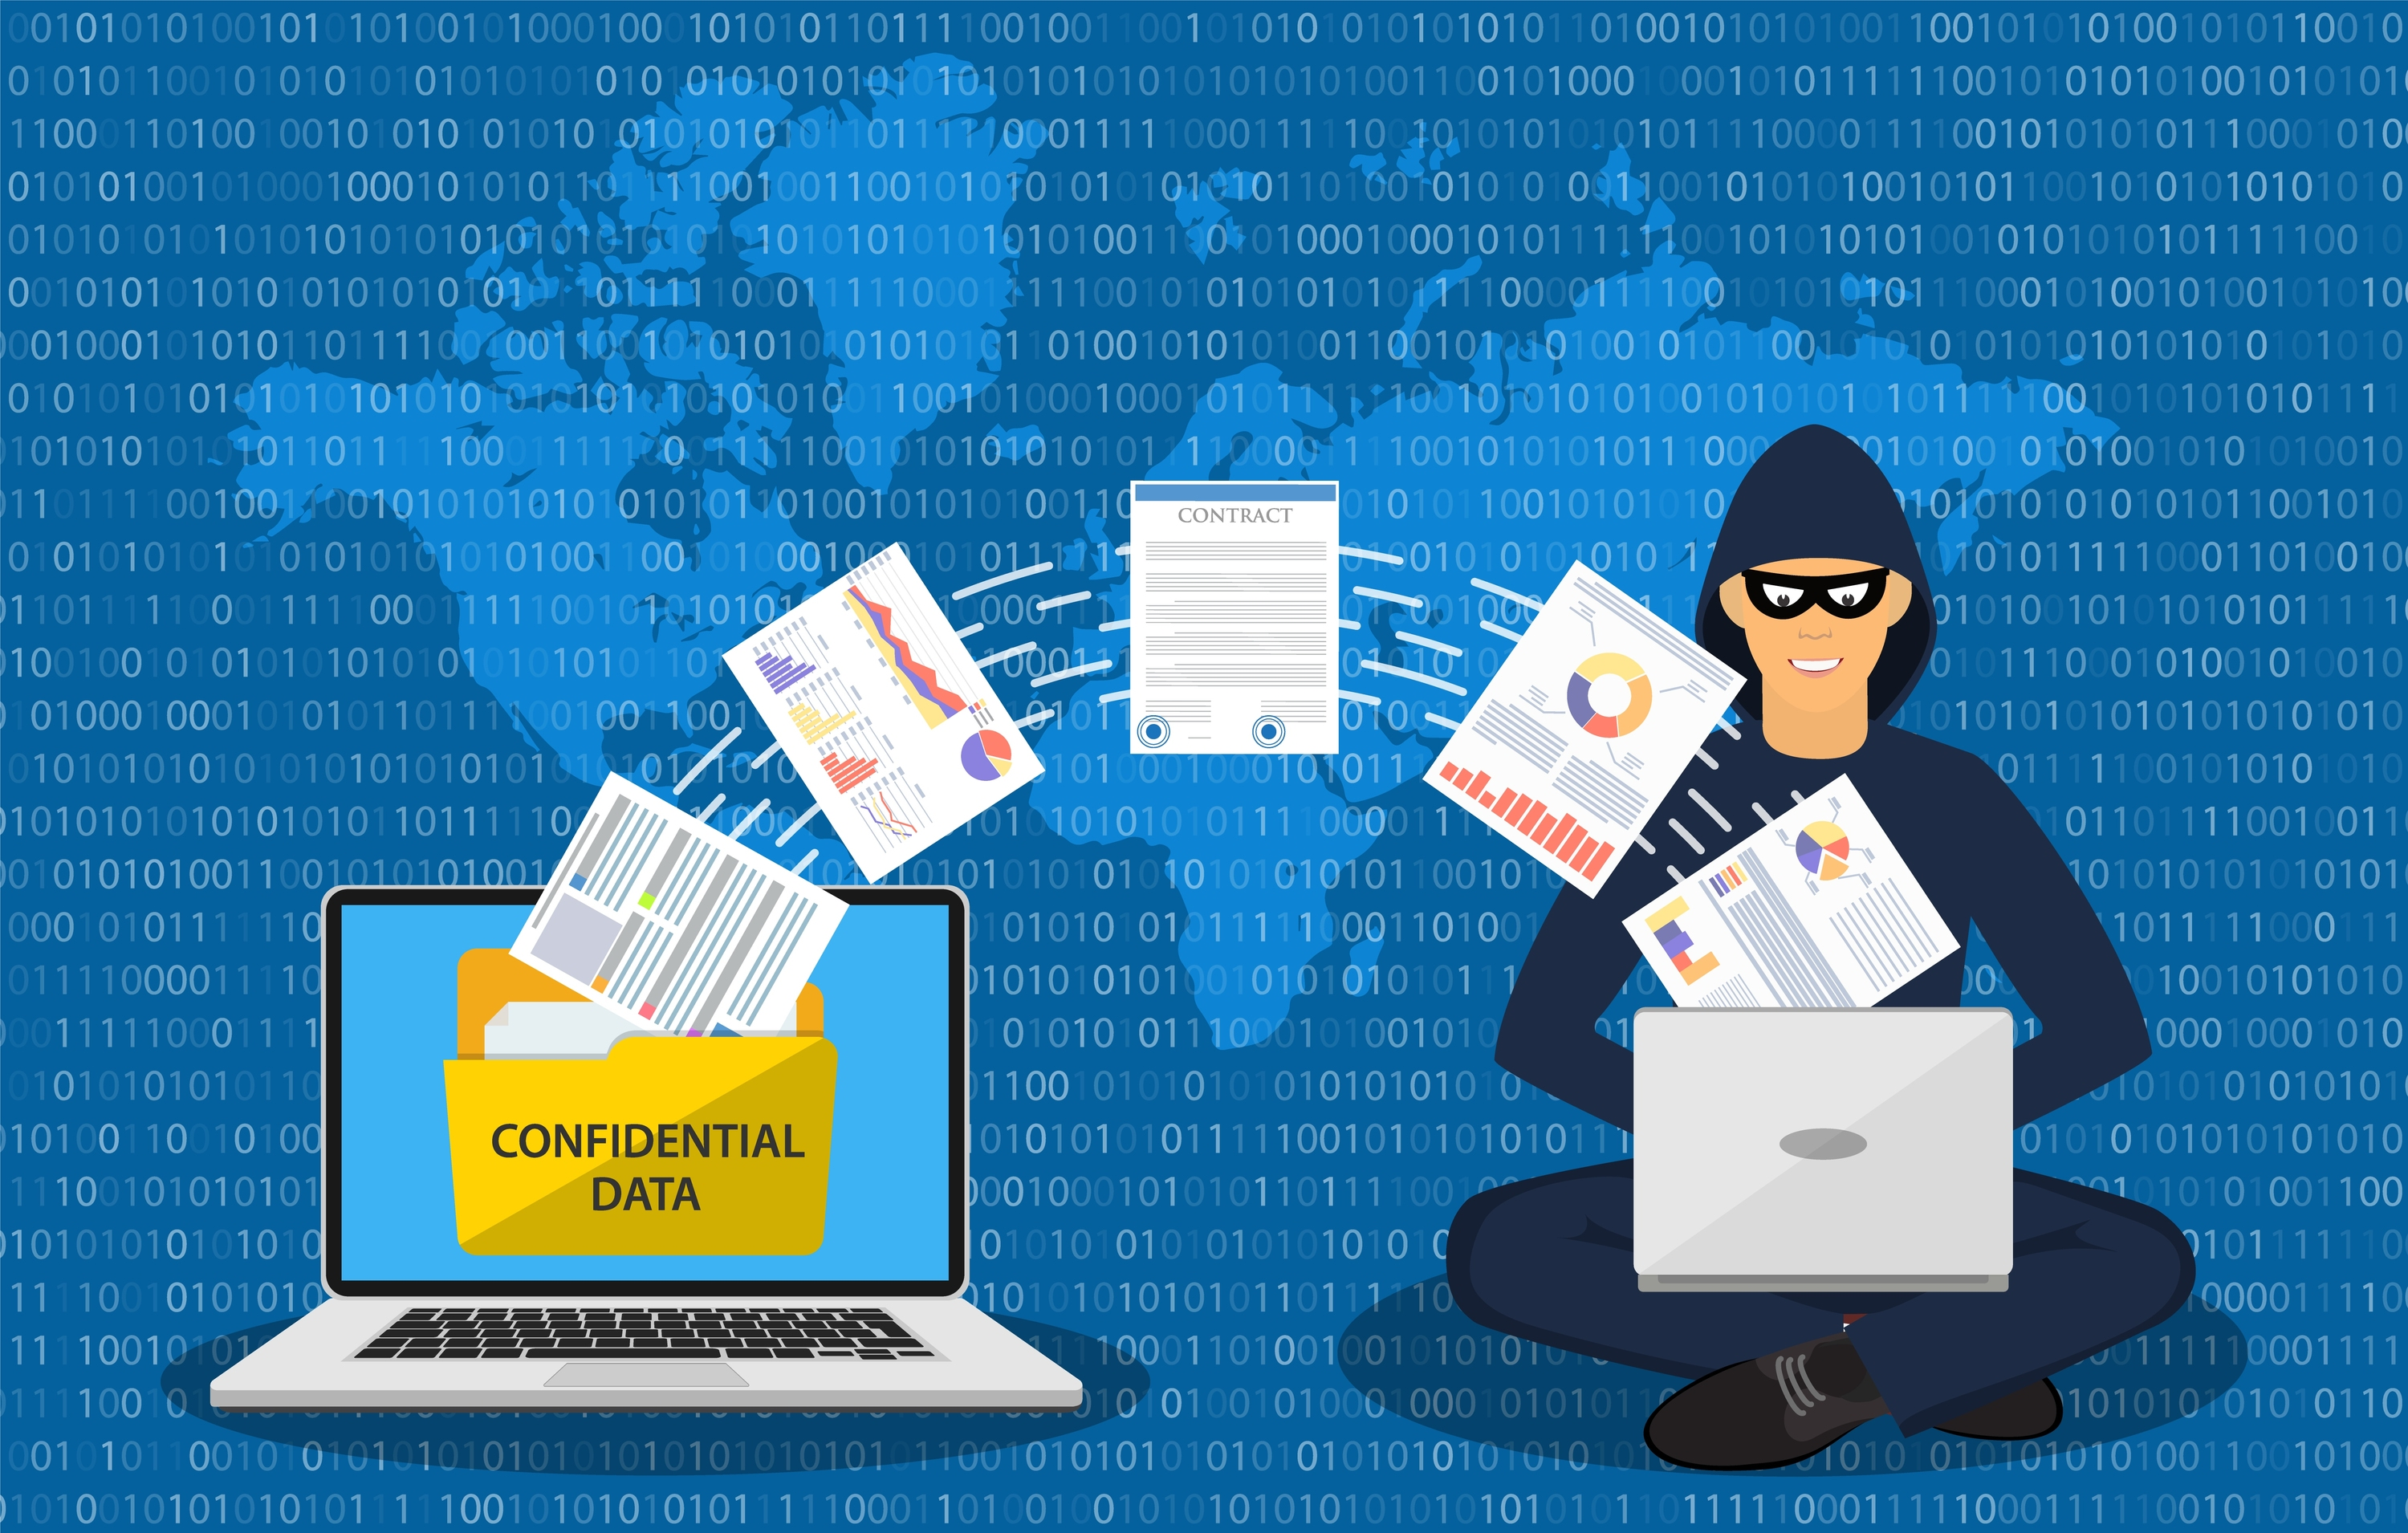 How to Identify and Avoid Social Engineering Attacks